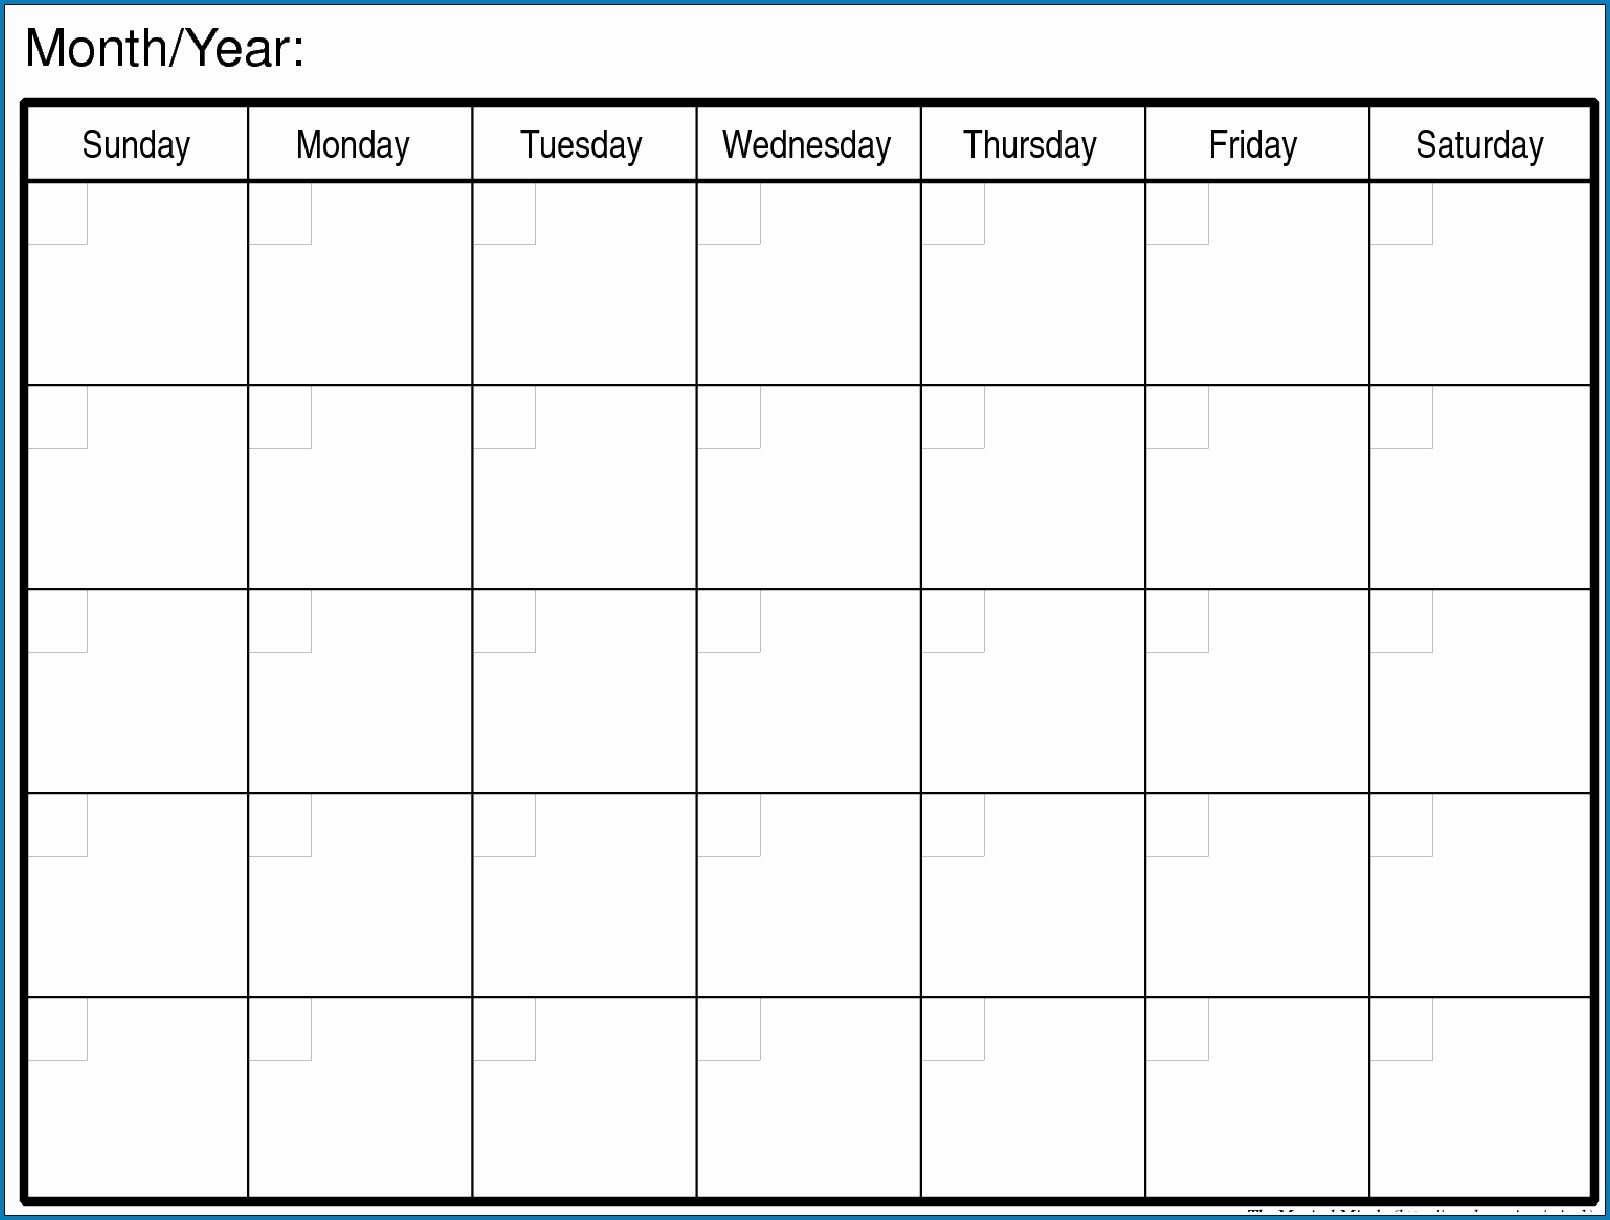 Free Blank Printable Monthly Calendar Monday – Friday